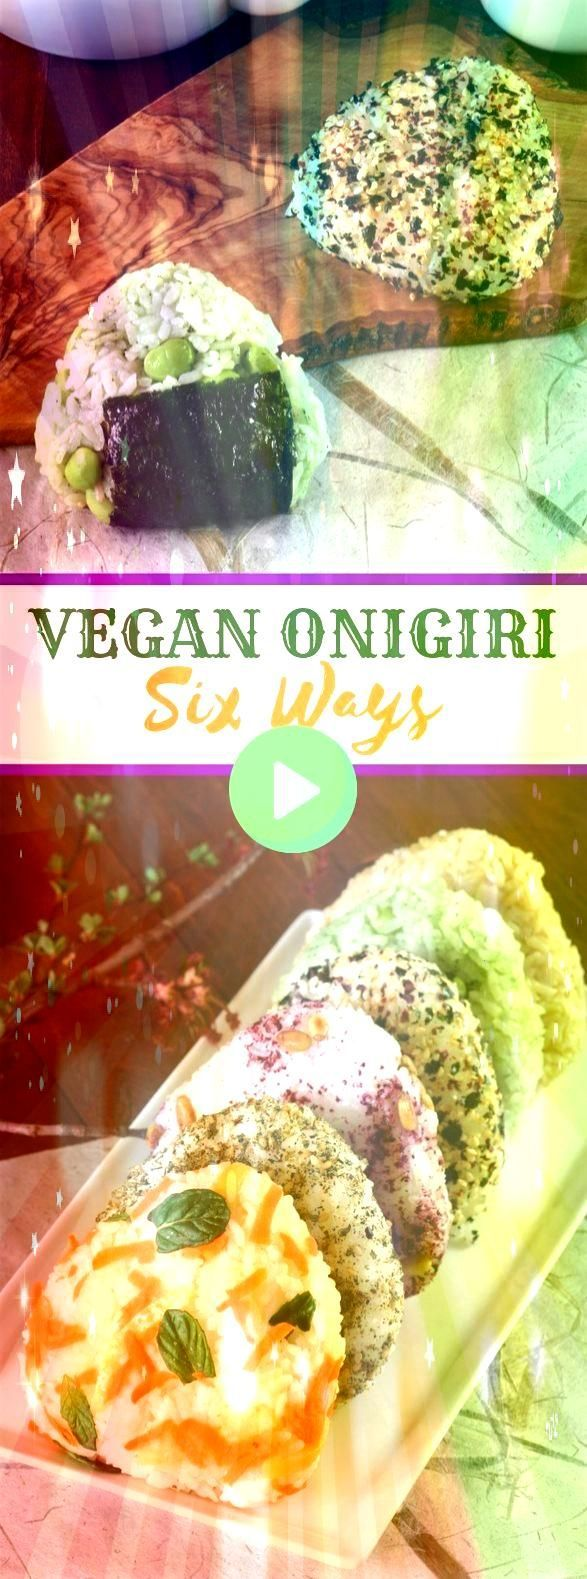 VEGAN ONIGIRI SIX WAYS VEGAN ONIGIRI SIX WAYS Spinach and Mushroom Crustless Quiche is a great low carb breakfast or brunch tread packed with vegetables and protein Thai...